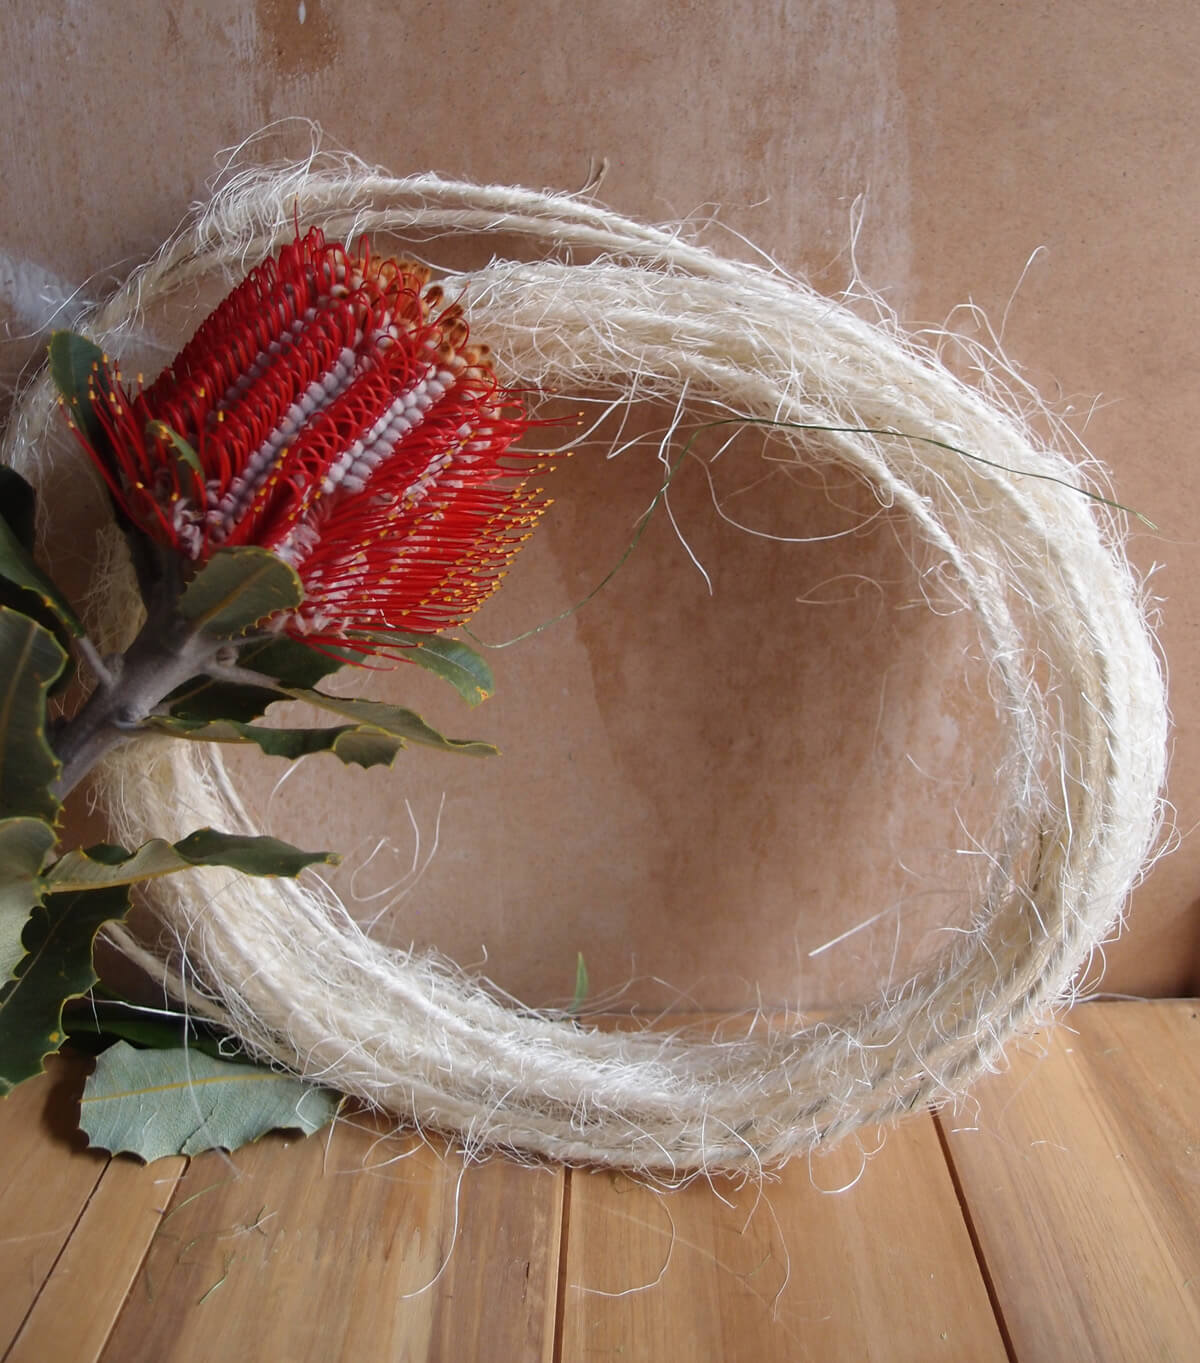 Natural Sisal Covered Wire Roping  3.5mm x 33 FT, Floral Supplies